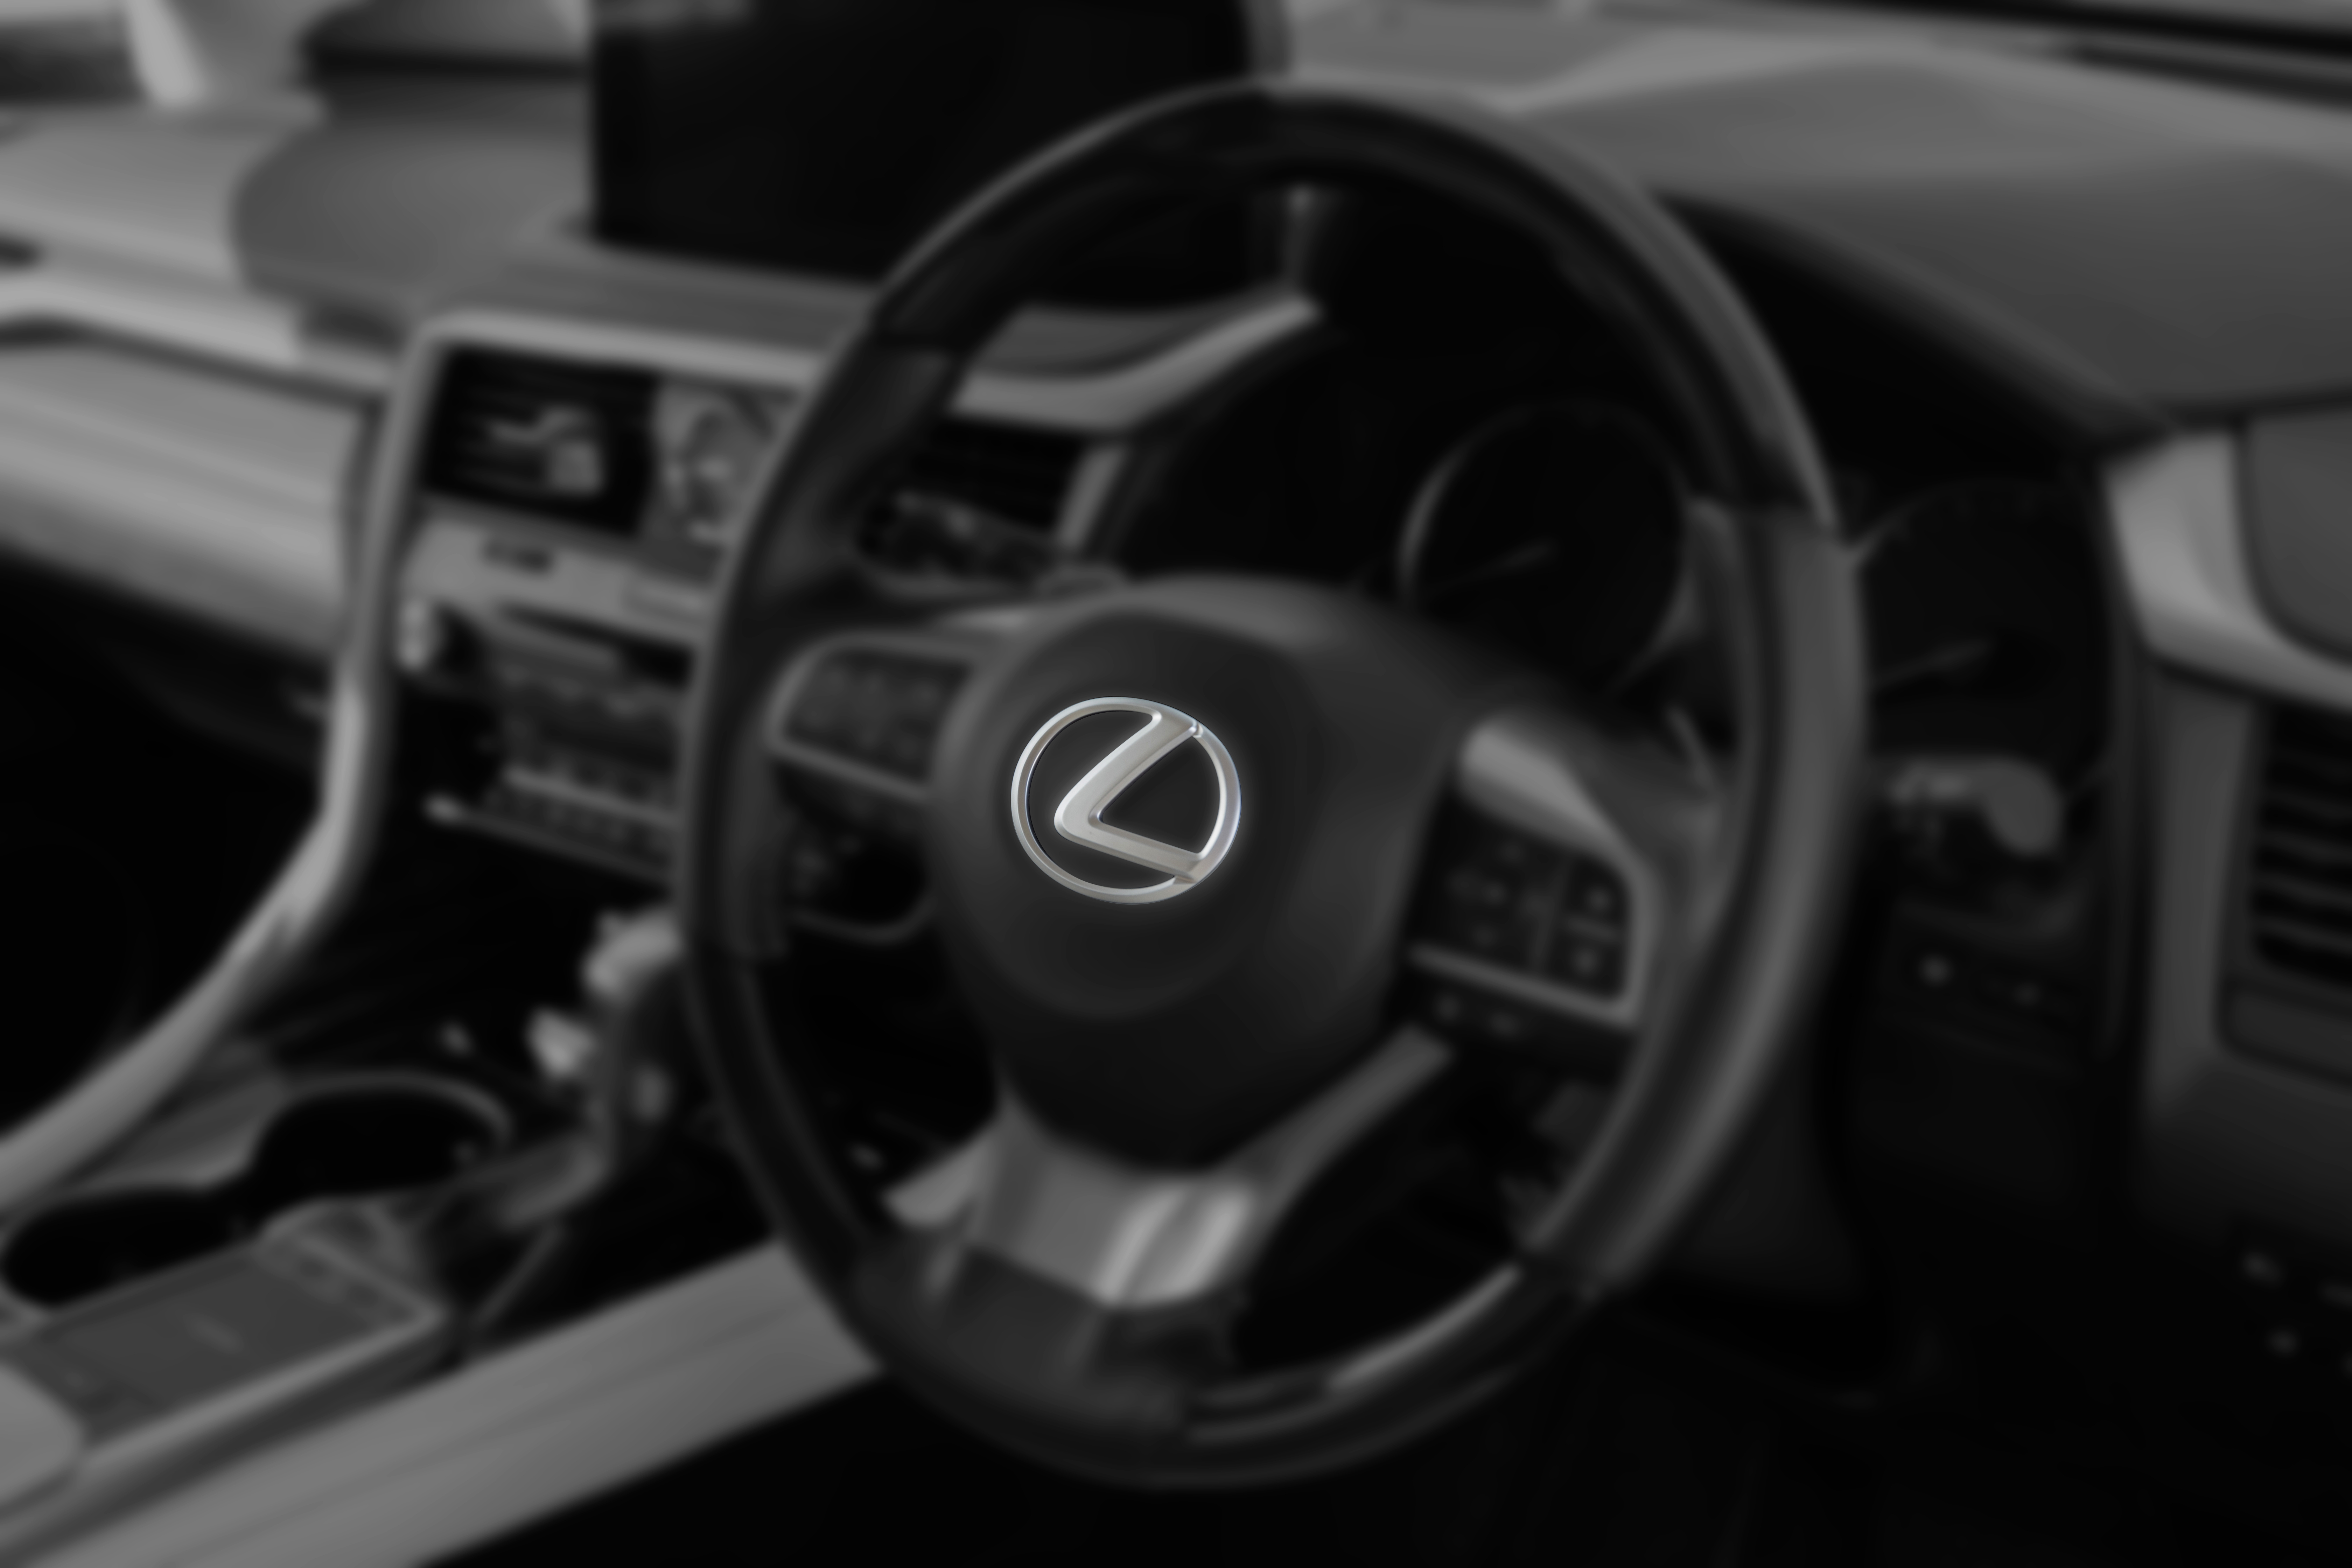 Article - Achieve A Luxury Auto Interior with Plastic Printed Parts